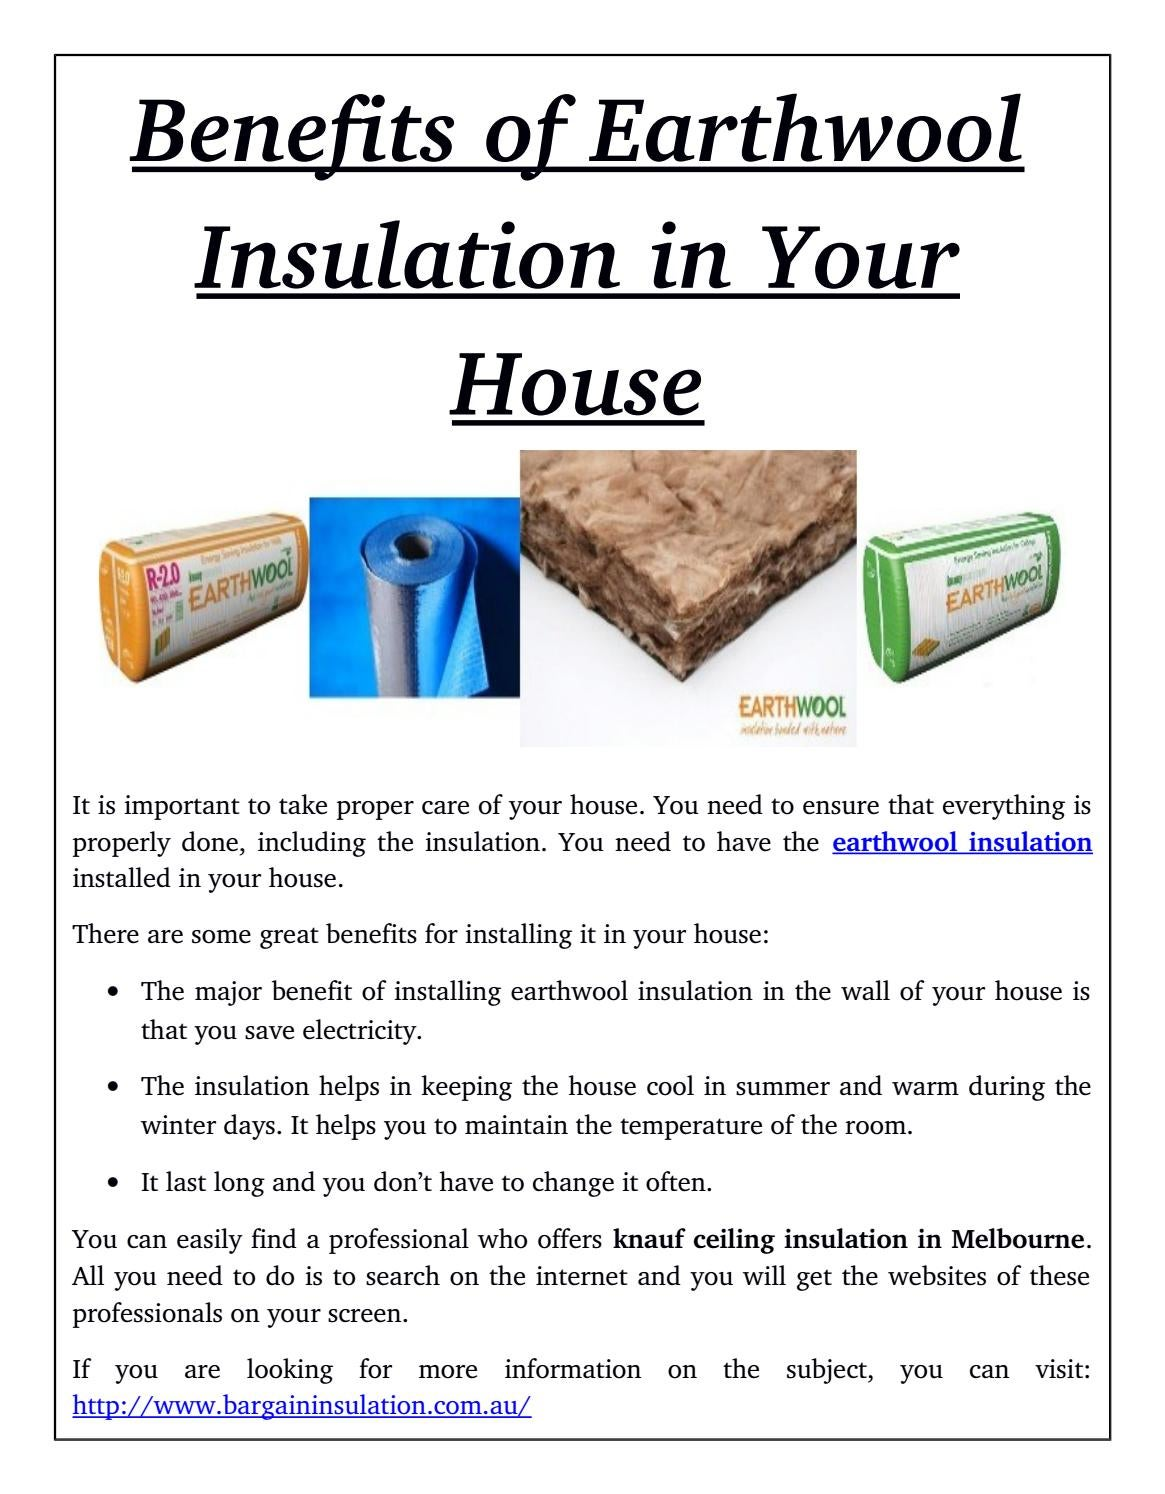 Benefits of earthwool insulation in your house by